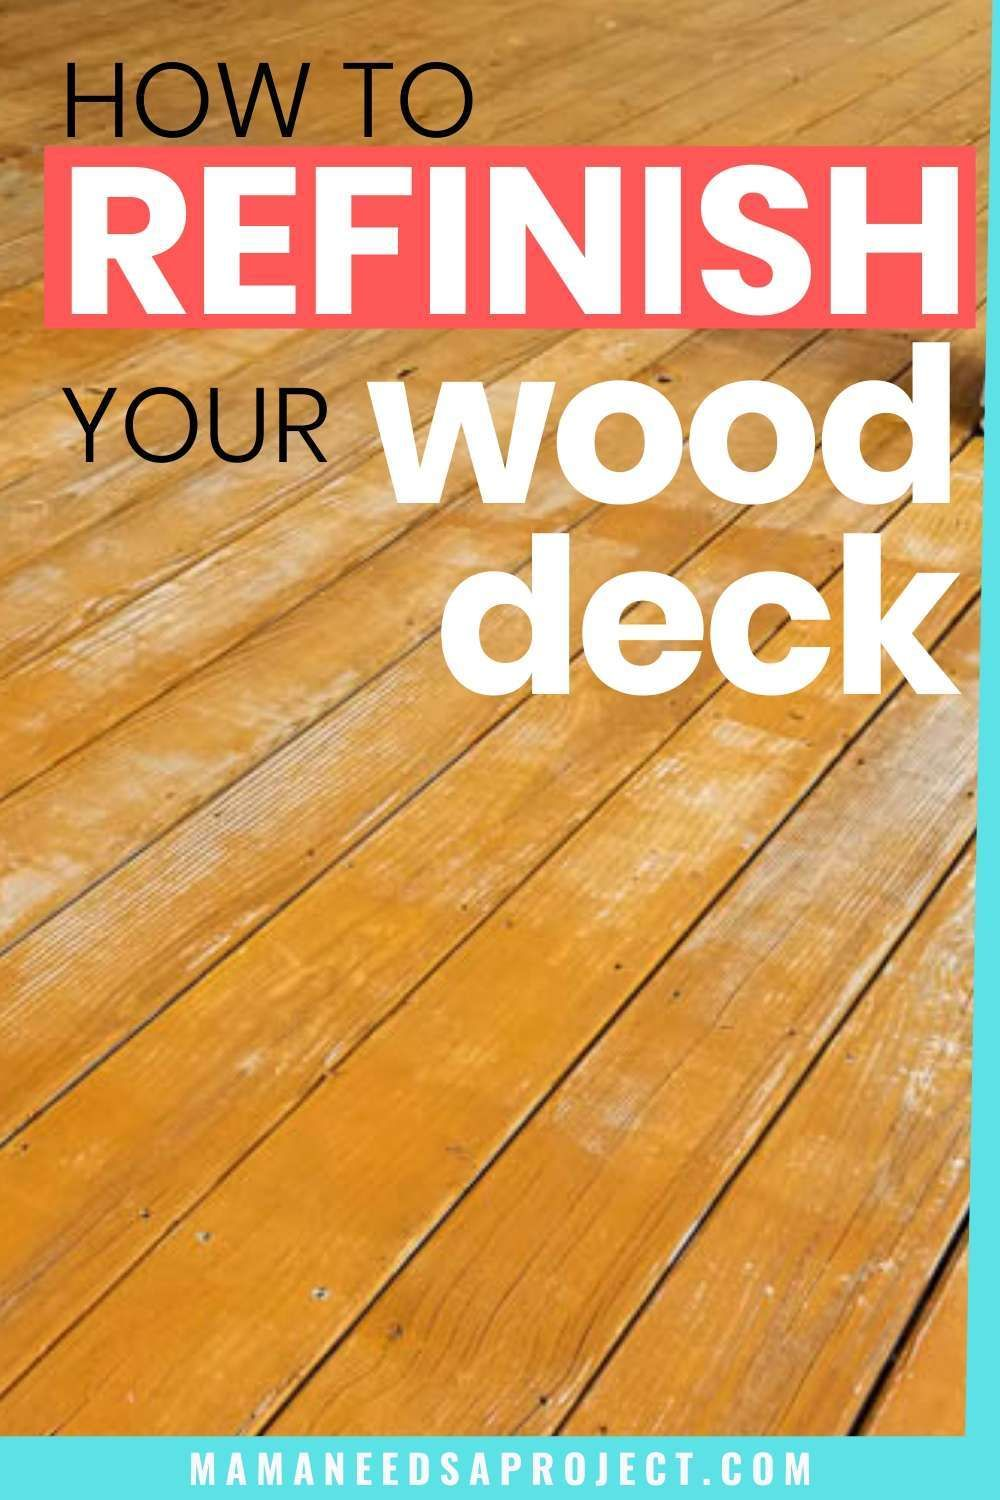 How We Restained Our Wood Deck Deck Cleaning Prep And Staining Mama Needs A Project In 2020 Deck Cleaning Wood Deck Staining Deck